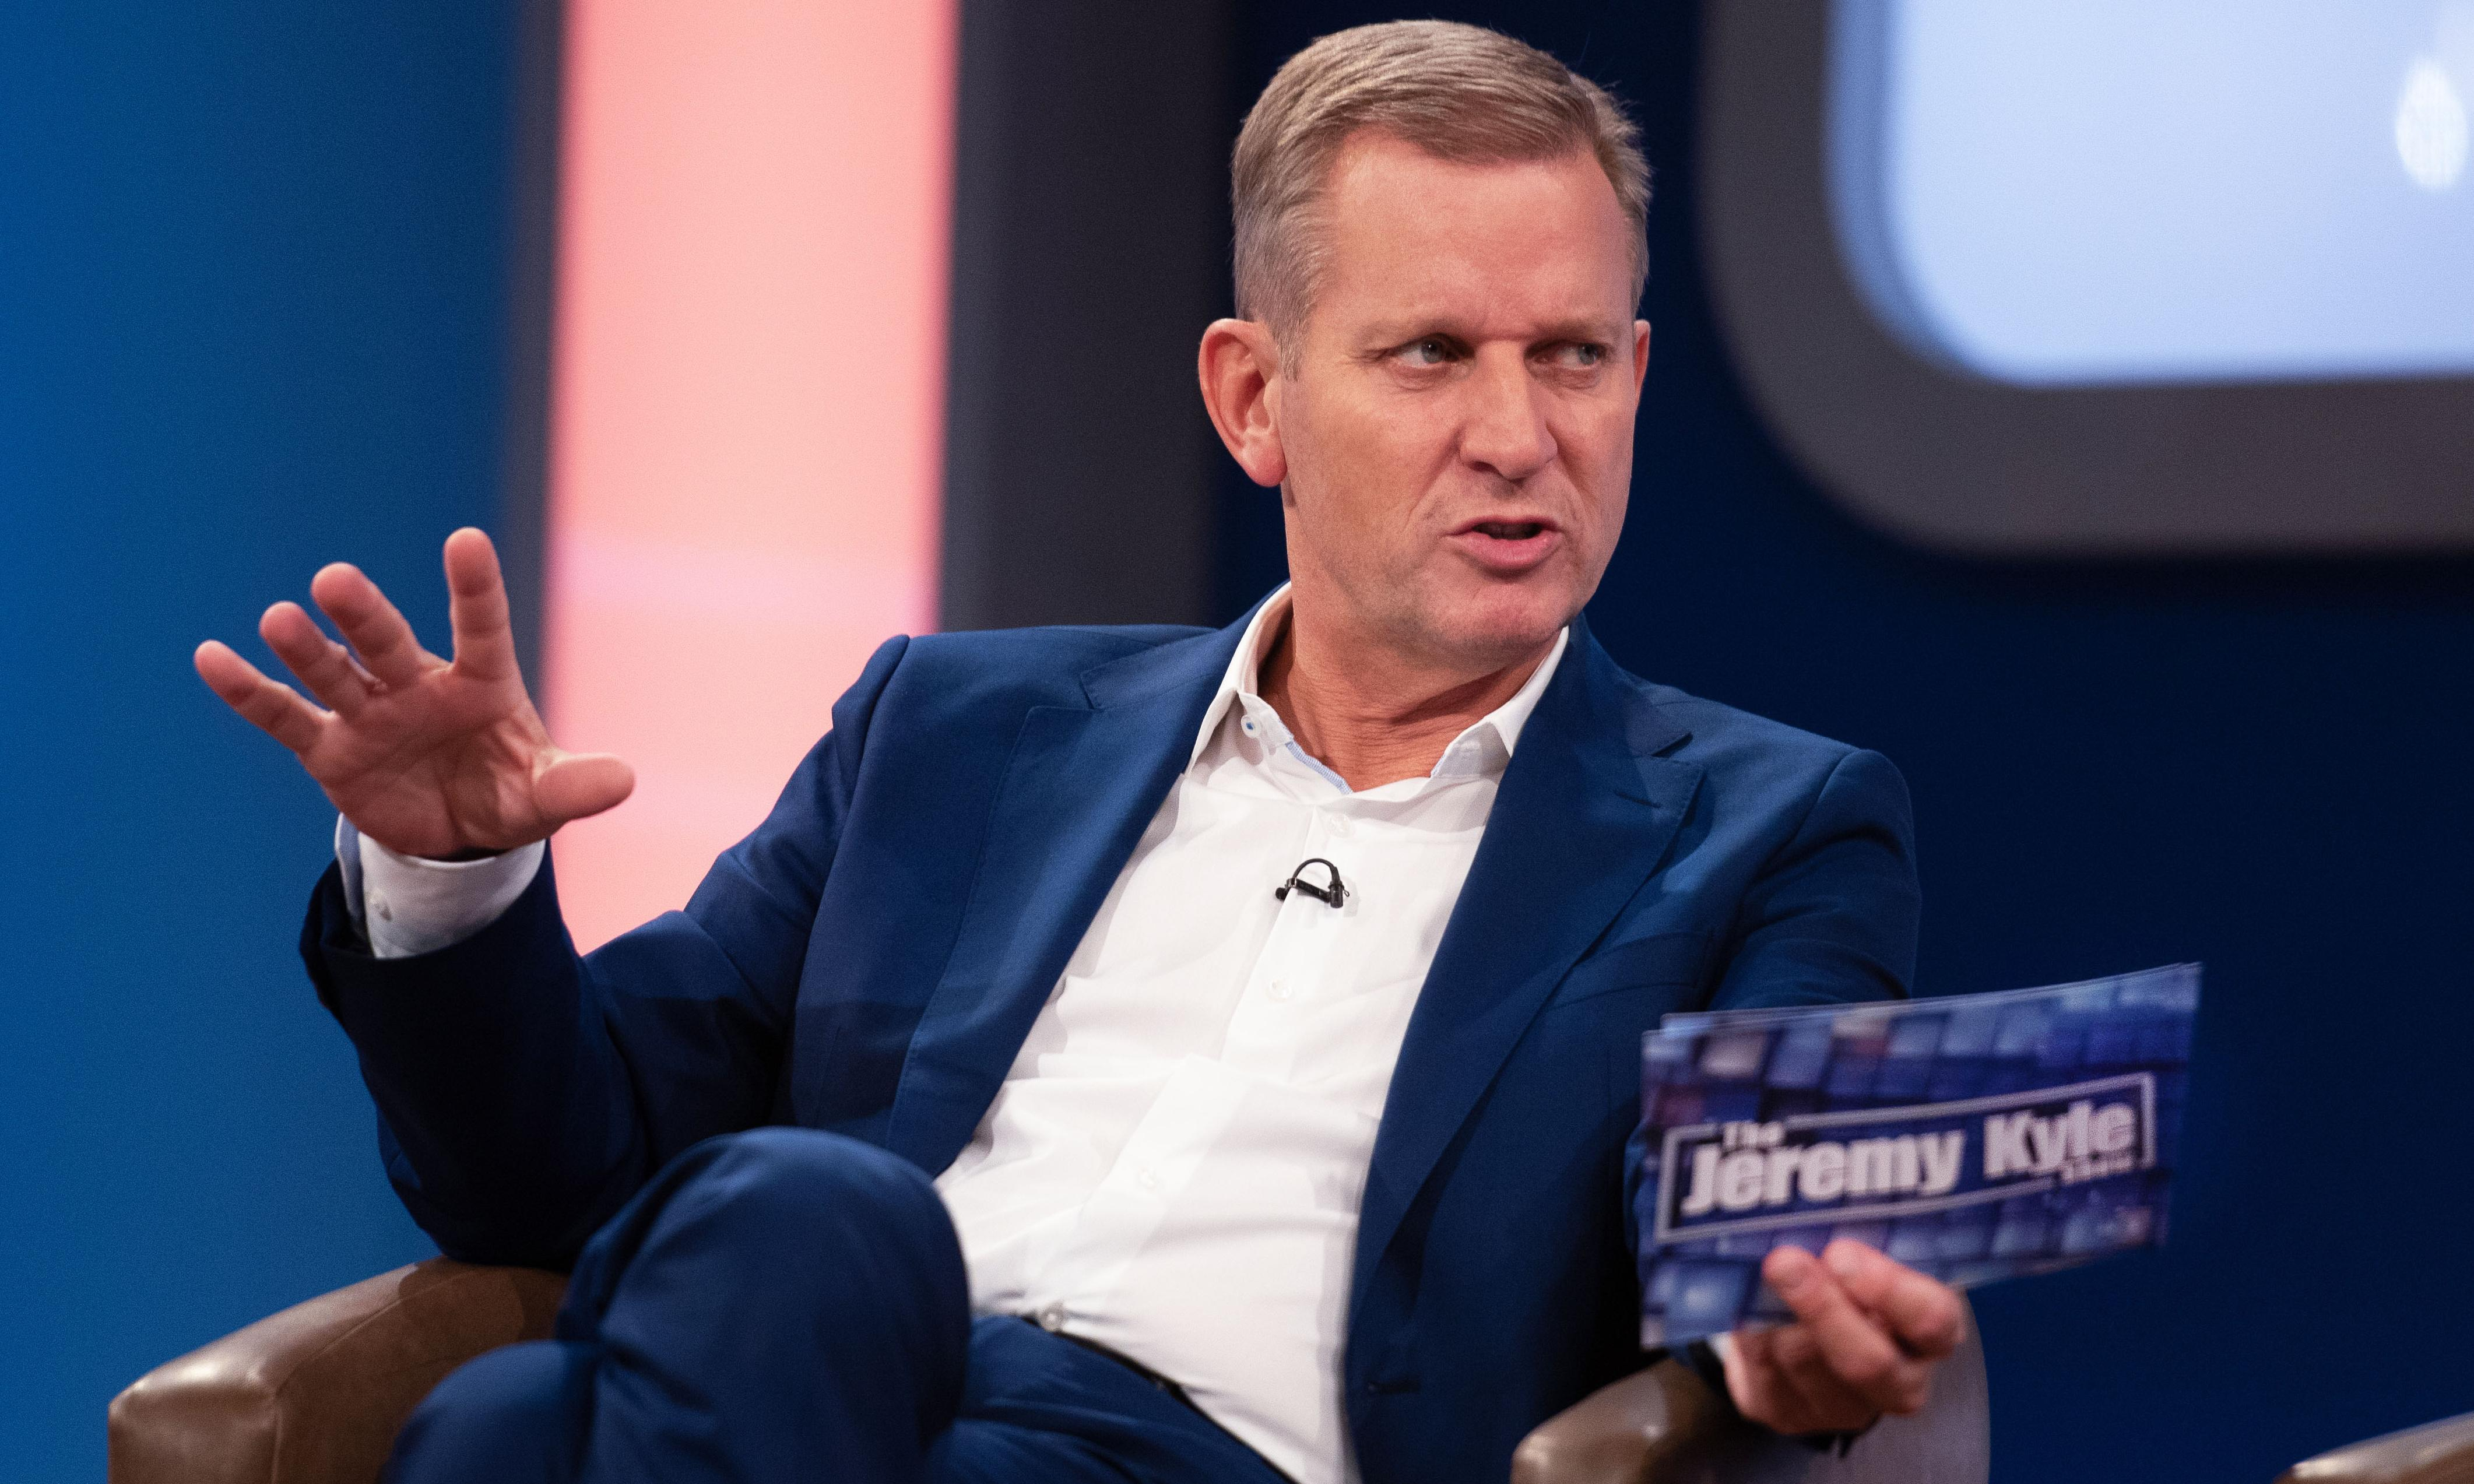 Top lawyer ready to take on Jeremy Kyle Show over guest's death